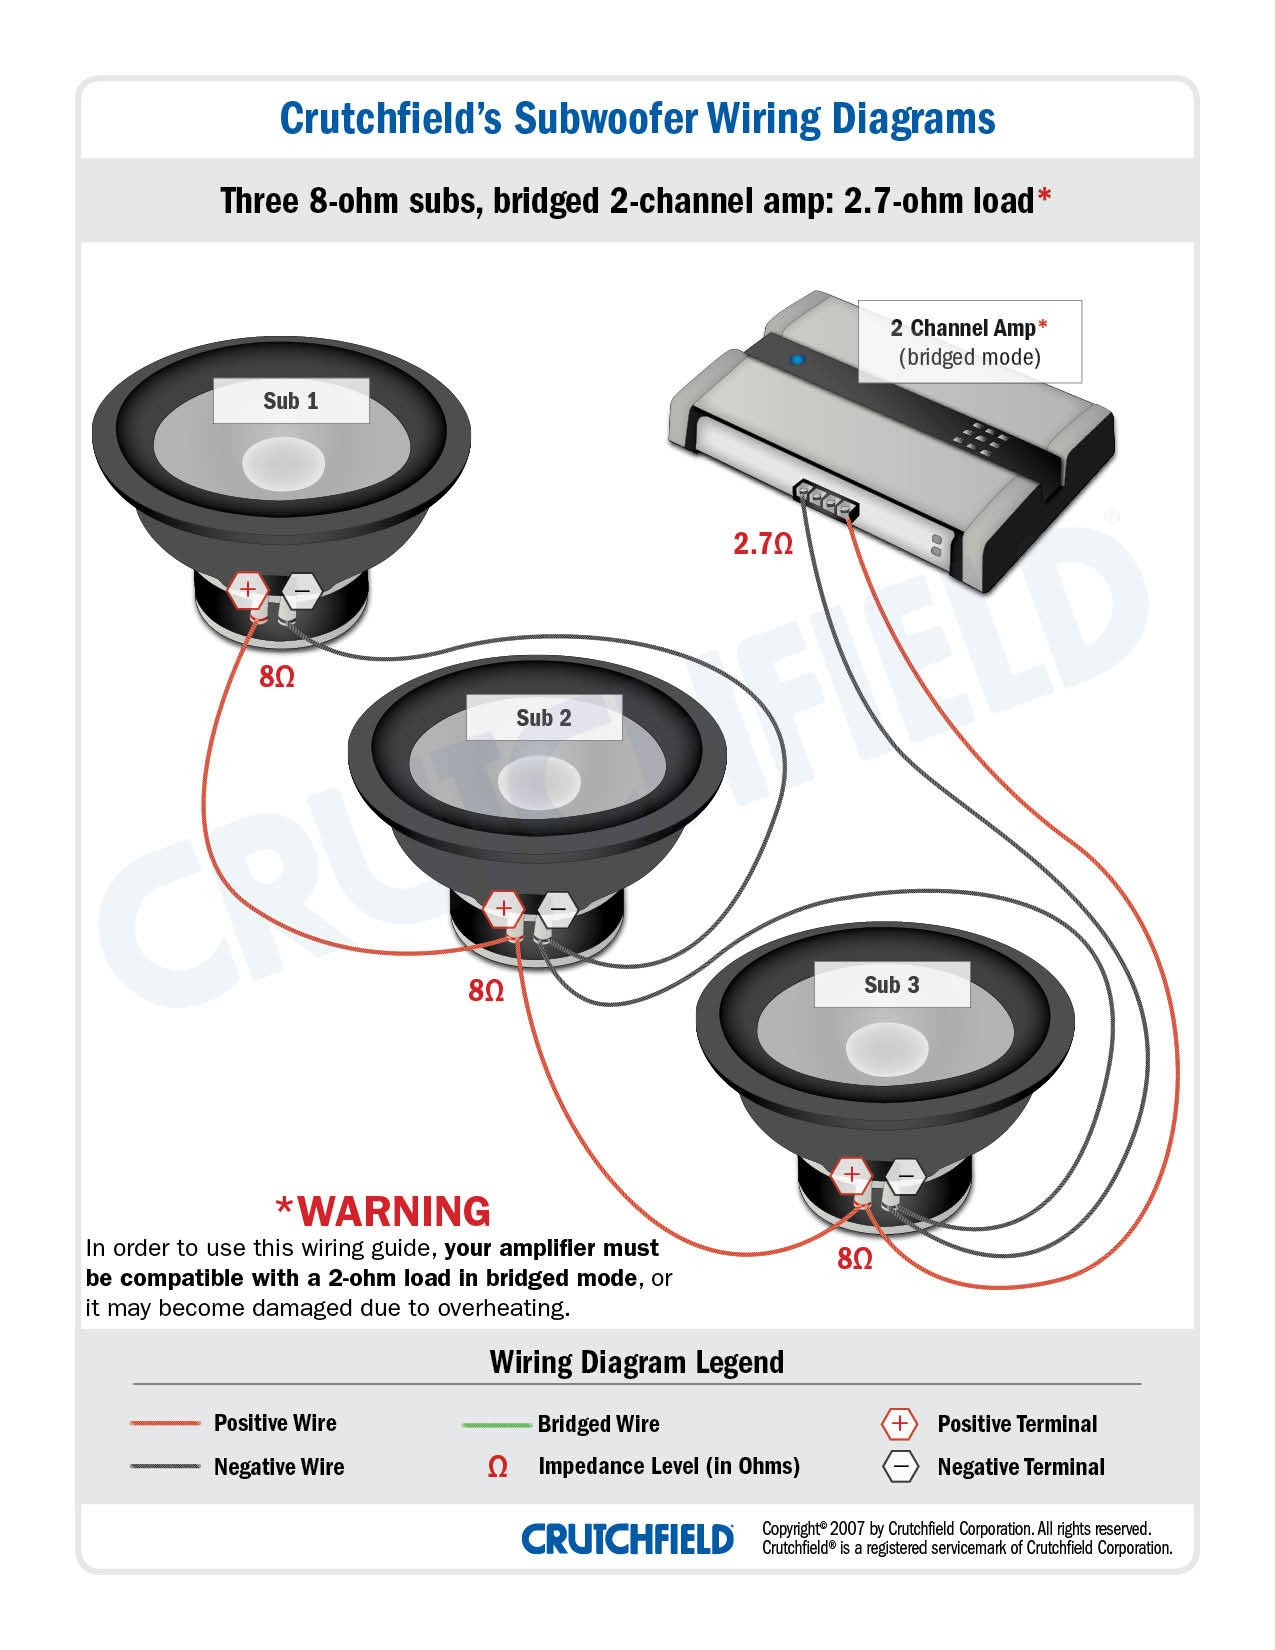 Rockford Fosgate Subwoofer Wiring Diagram - Wiring Schematics Diagram - Rockford Fosgate Amp Wiring Diagram